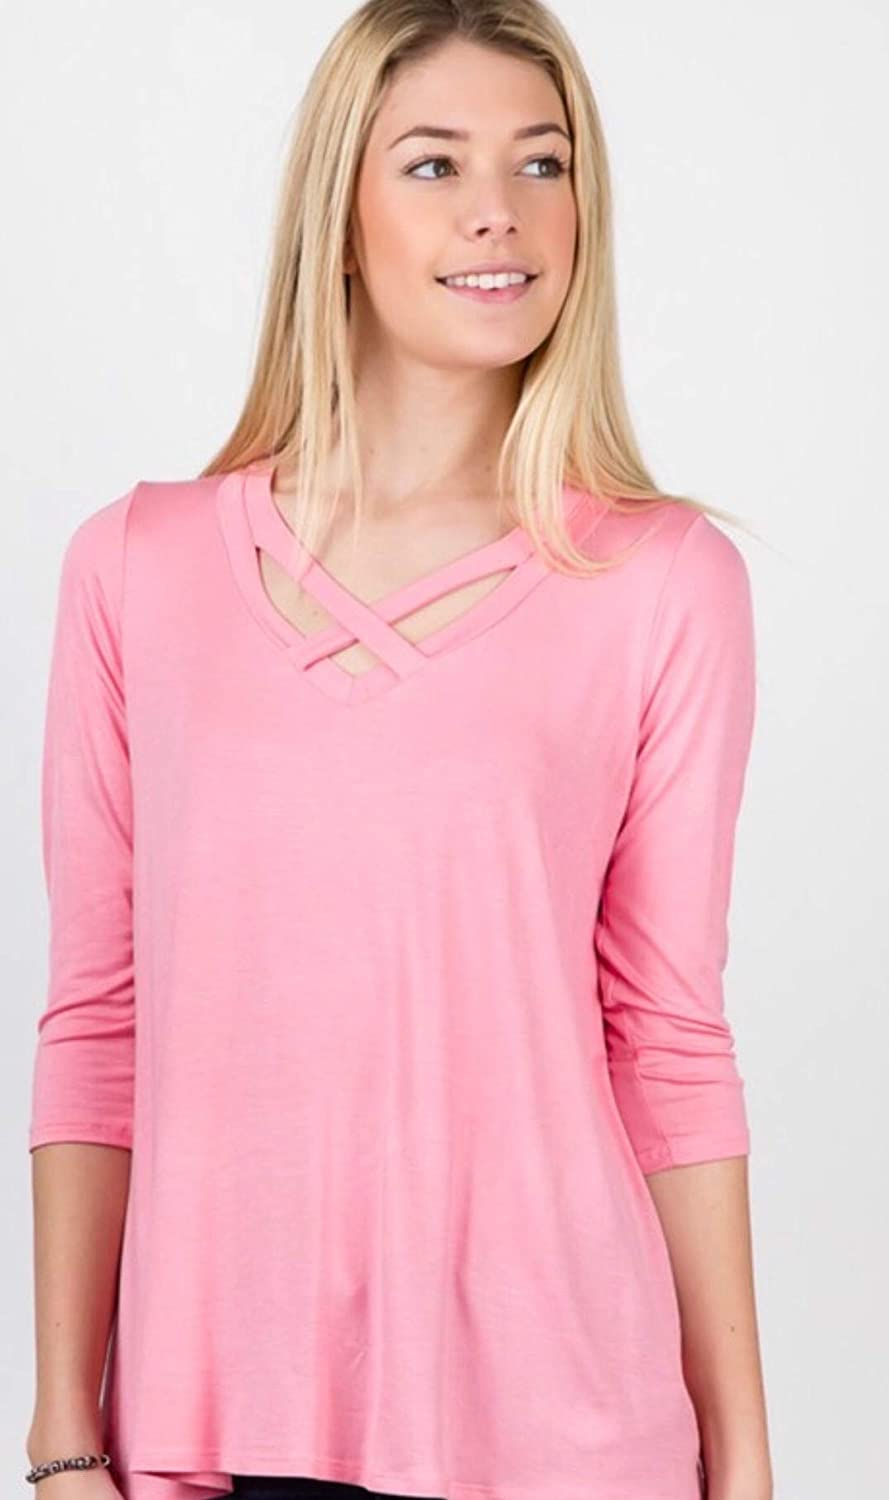 Small Crisscross at Neckline and Loose fit top Blush Pink 3//4 Sleeve